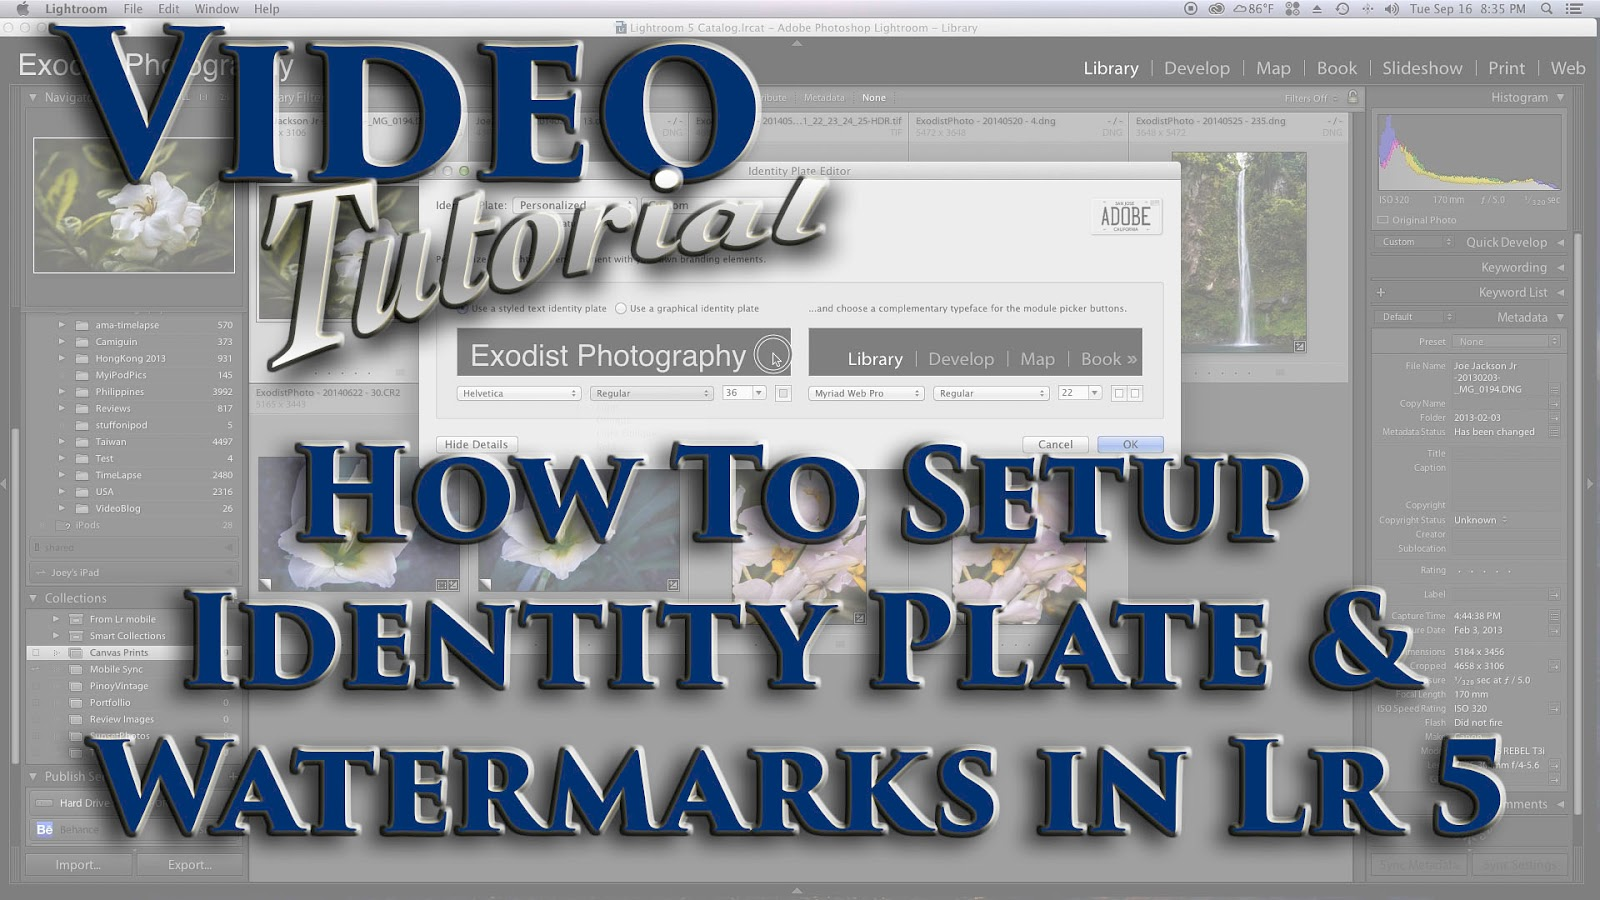 Learn How To Setup Identity Plate & Watermarks In Lr 5